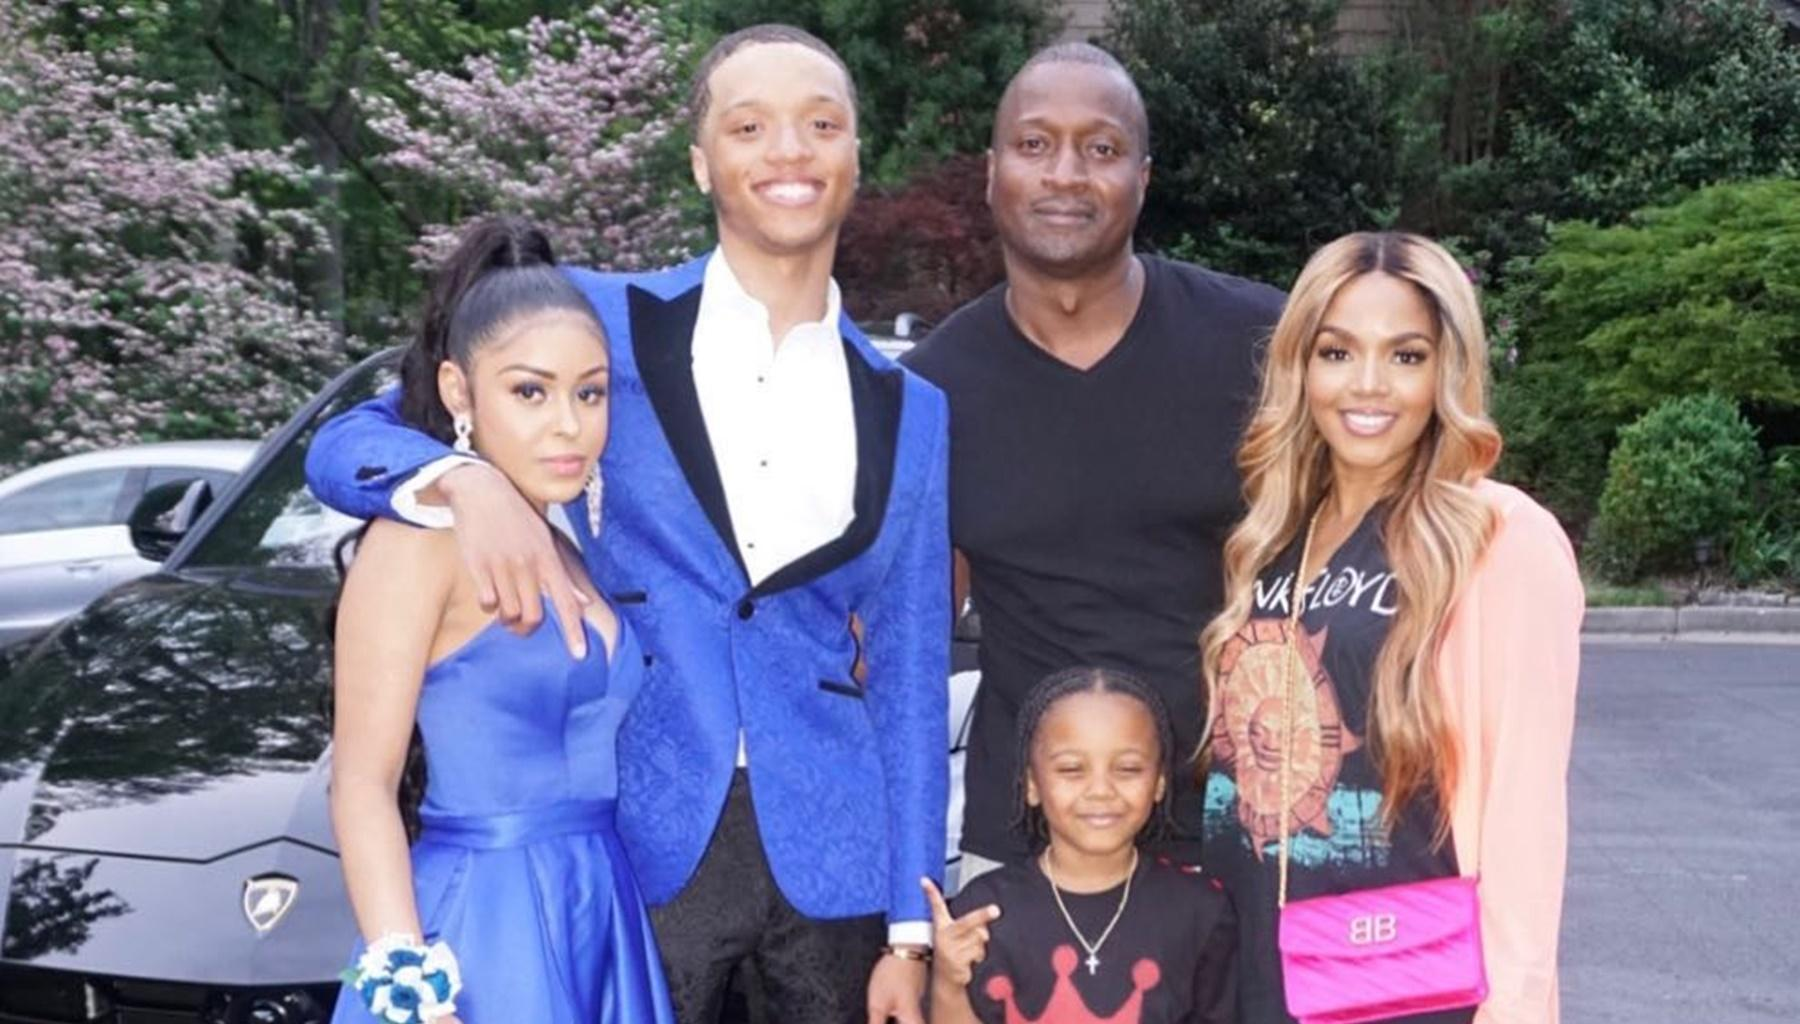 Rasheeda Frost Gets Blasted After Son Ky's Over-The-Top Prom Video With Helicopter Goes Viral -- Reginae Carter And Kandi Burruss Have Her Back